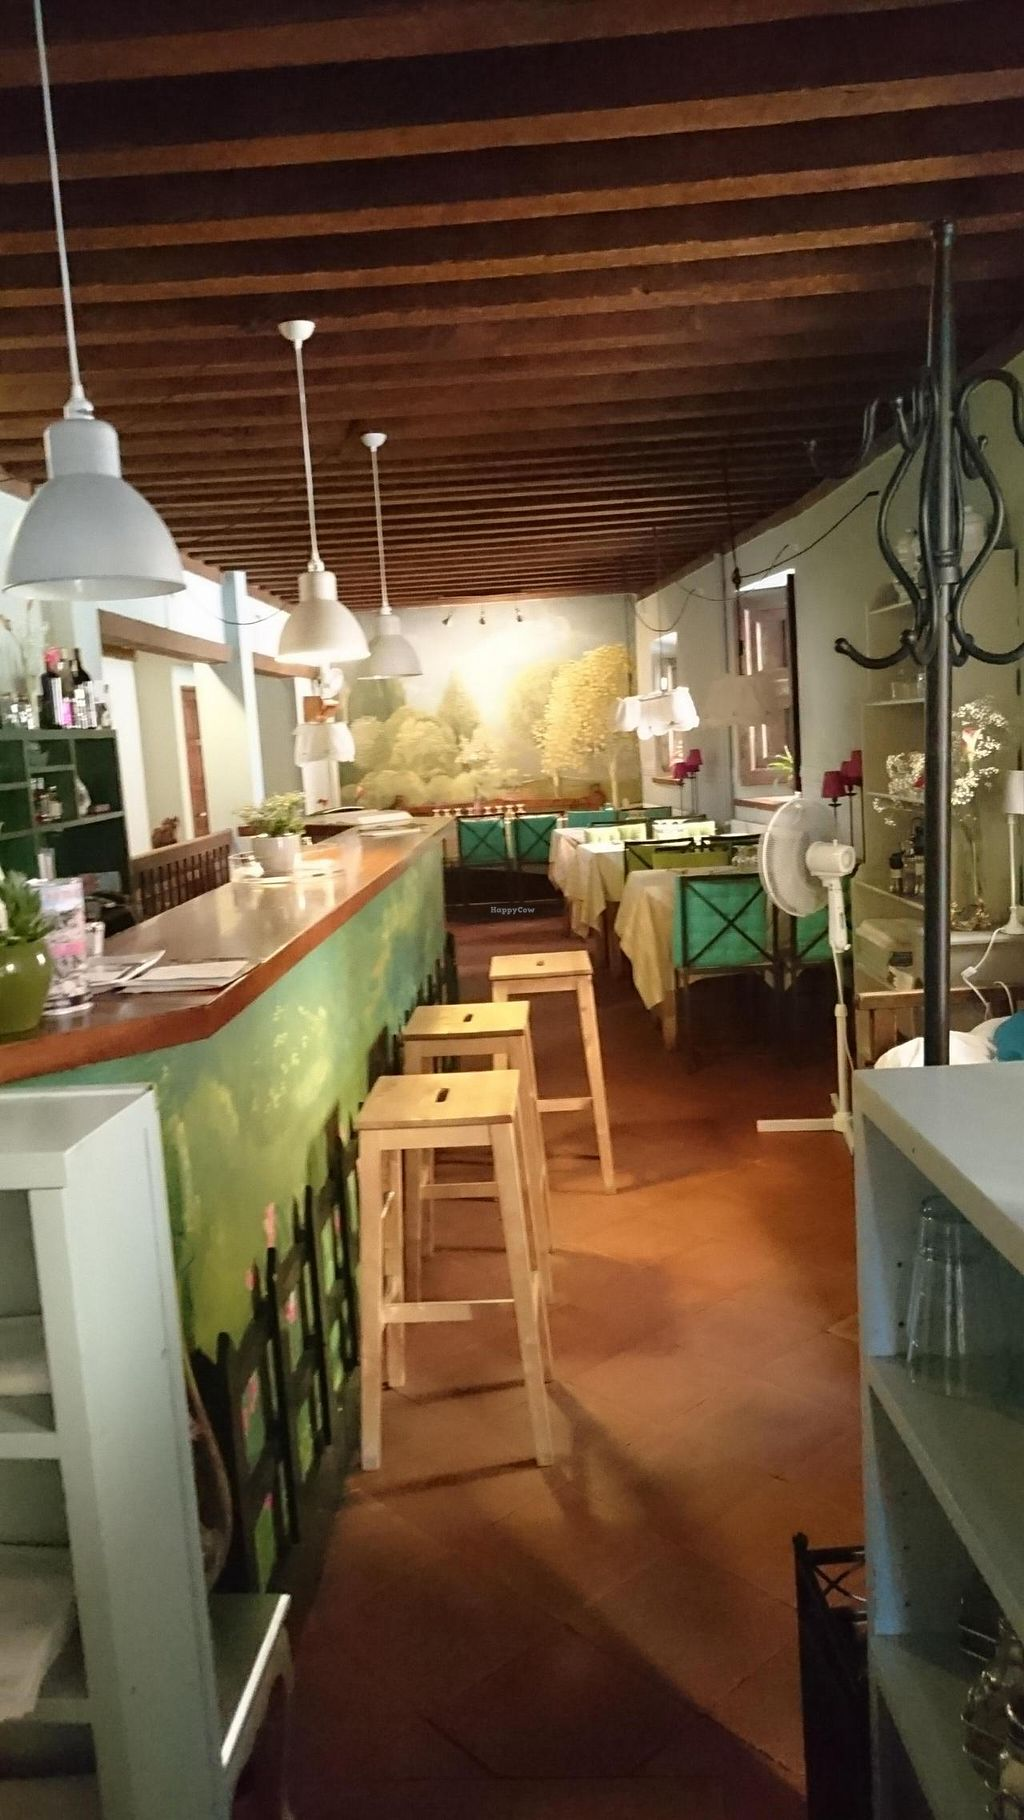 """Photo of Almuzara  by <a href=""""/members/profile/Cesarp"""">Cesarp</a> <br/>restaurant  <br/> July 11, 2015  - <a href='/contact/abuse/image/30532/108881'>Report</a>"""